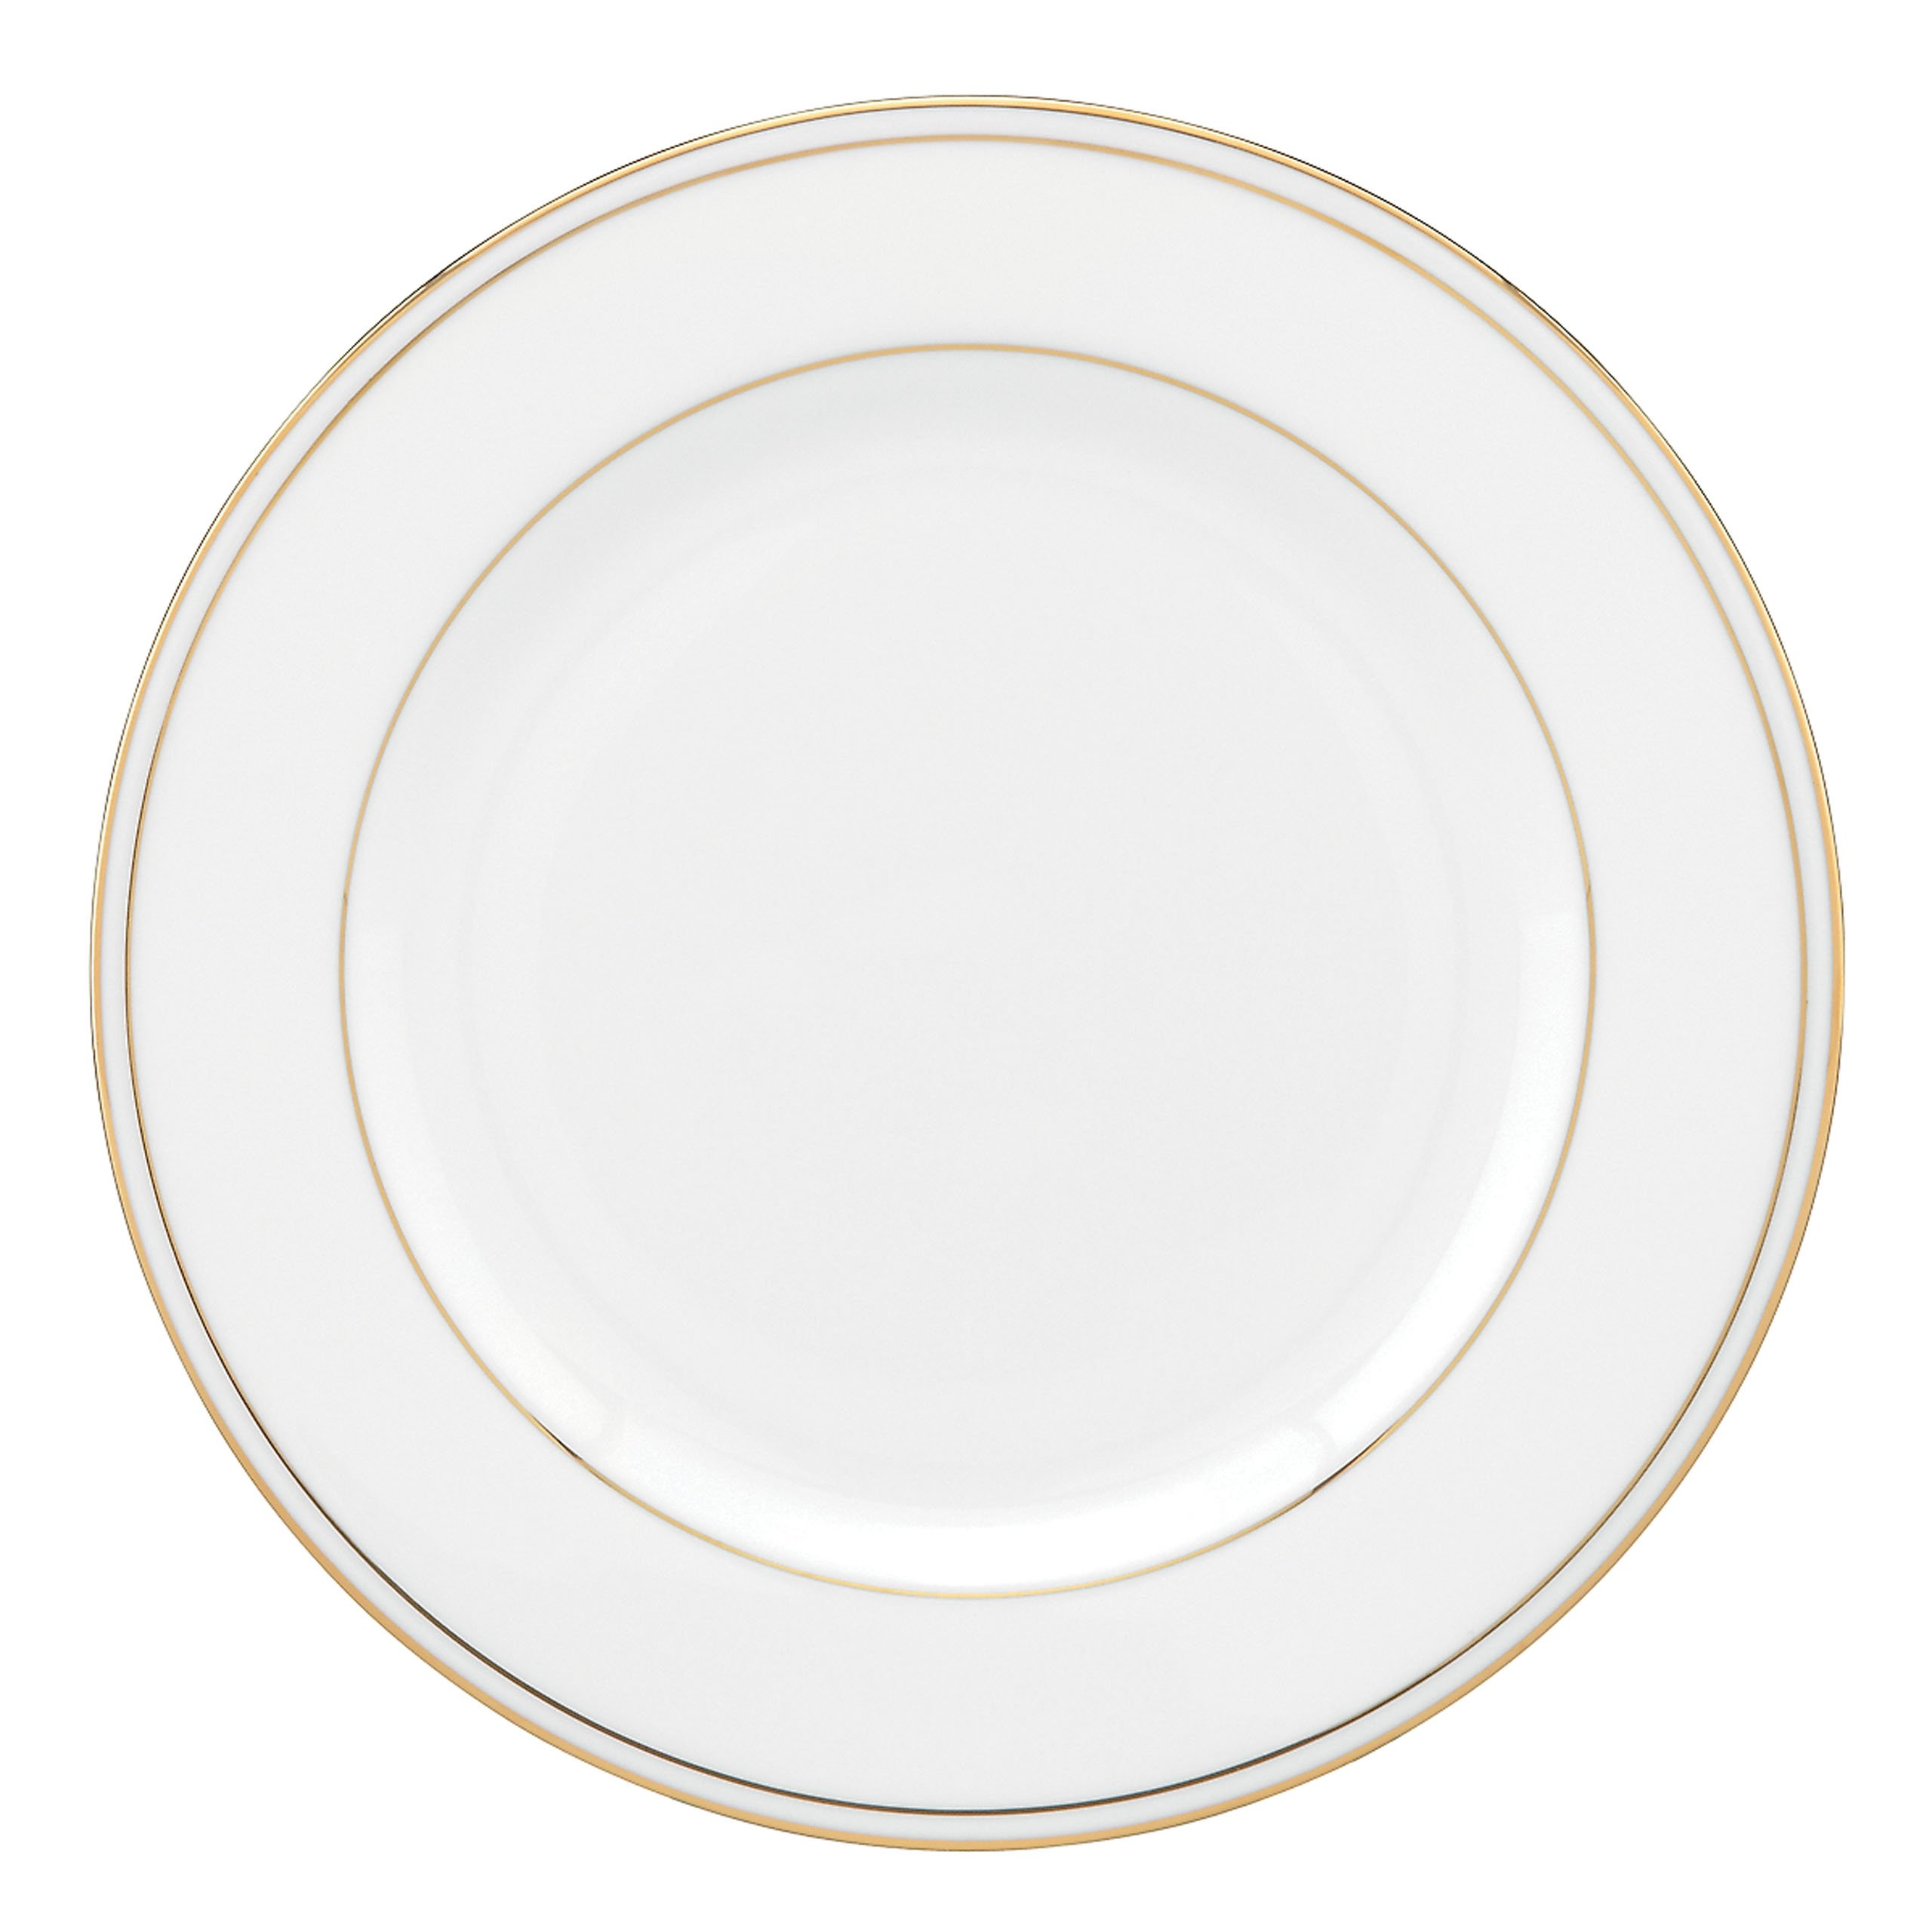 Lenox Federal Gold Bone China Butter Plate